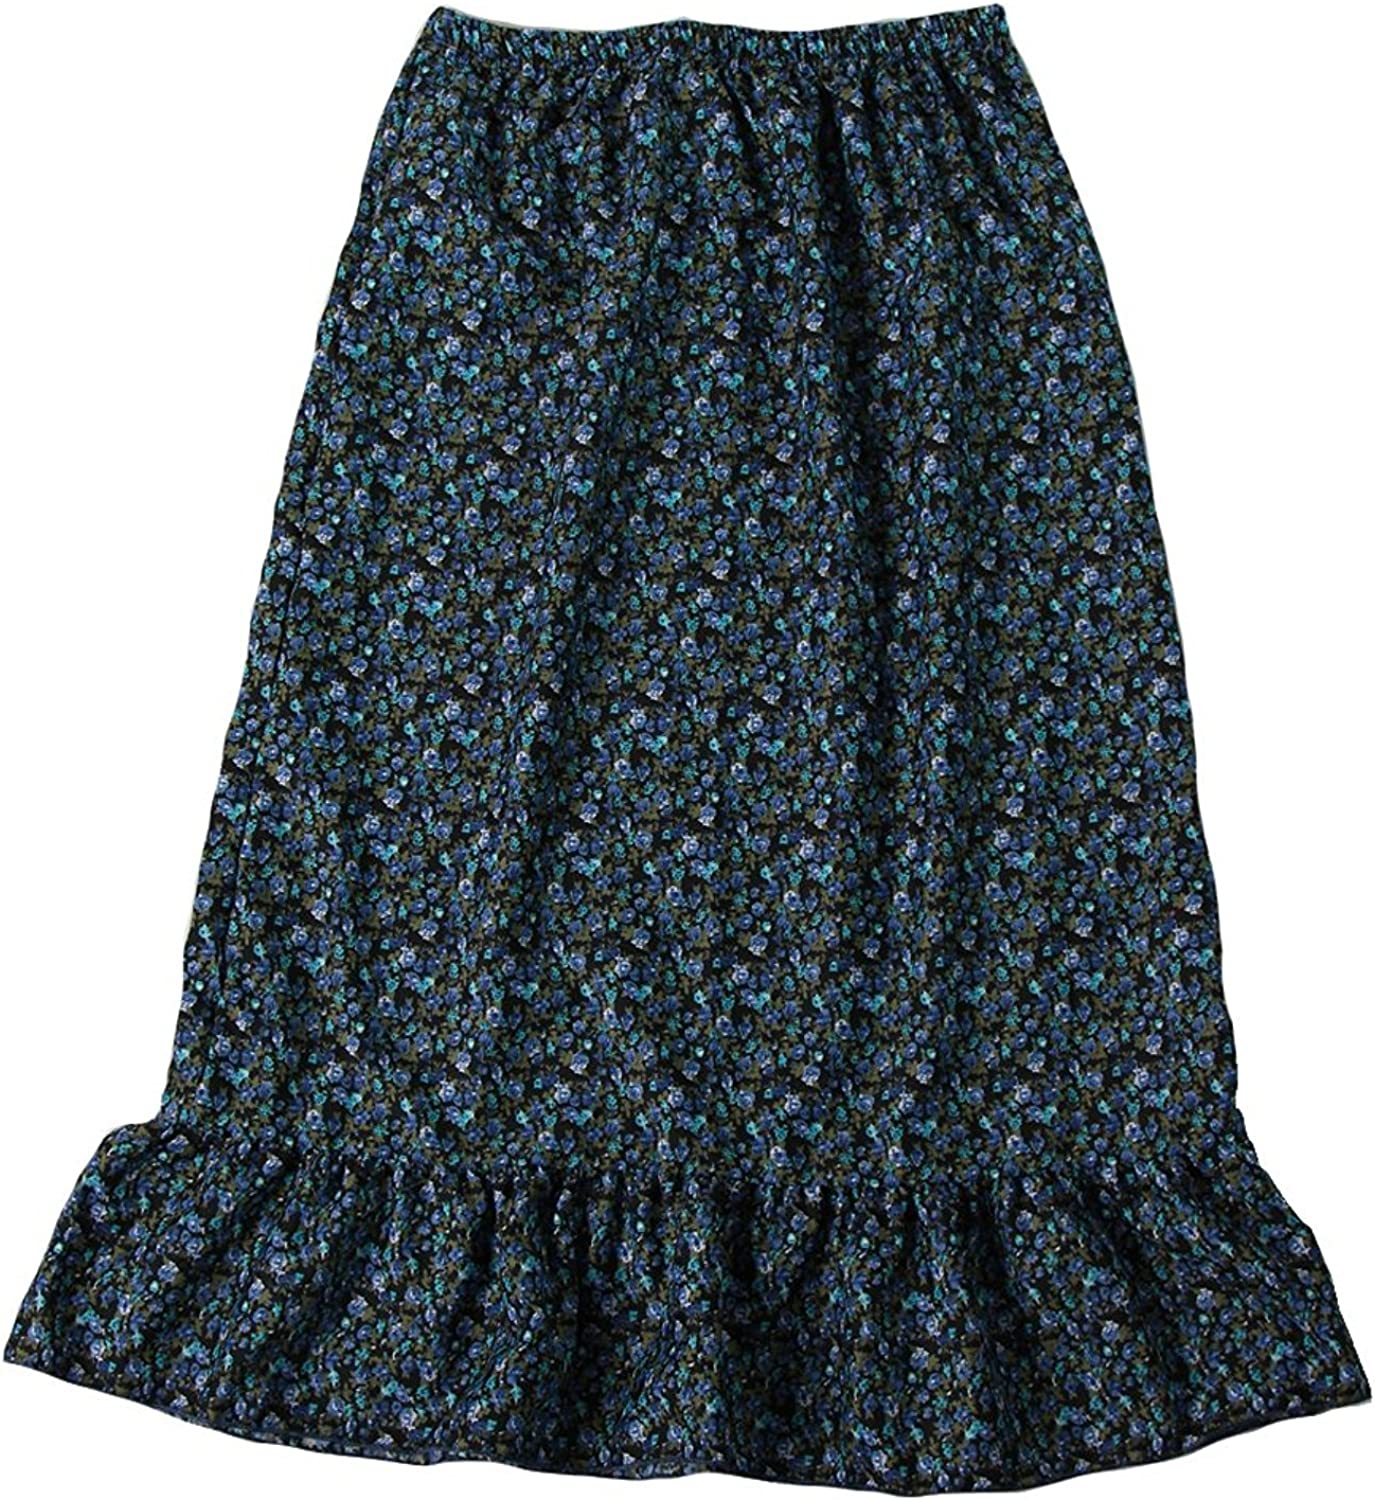 Girls Calico Pioneer Peasant Costume Skirt Choose Color and Size